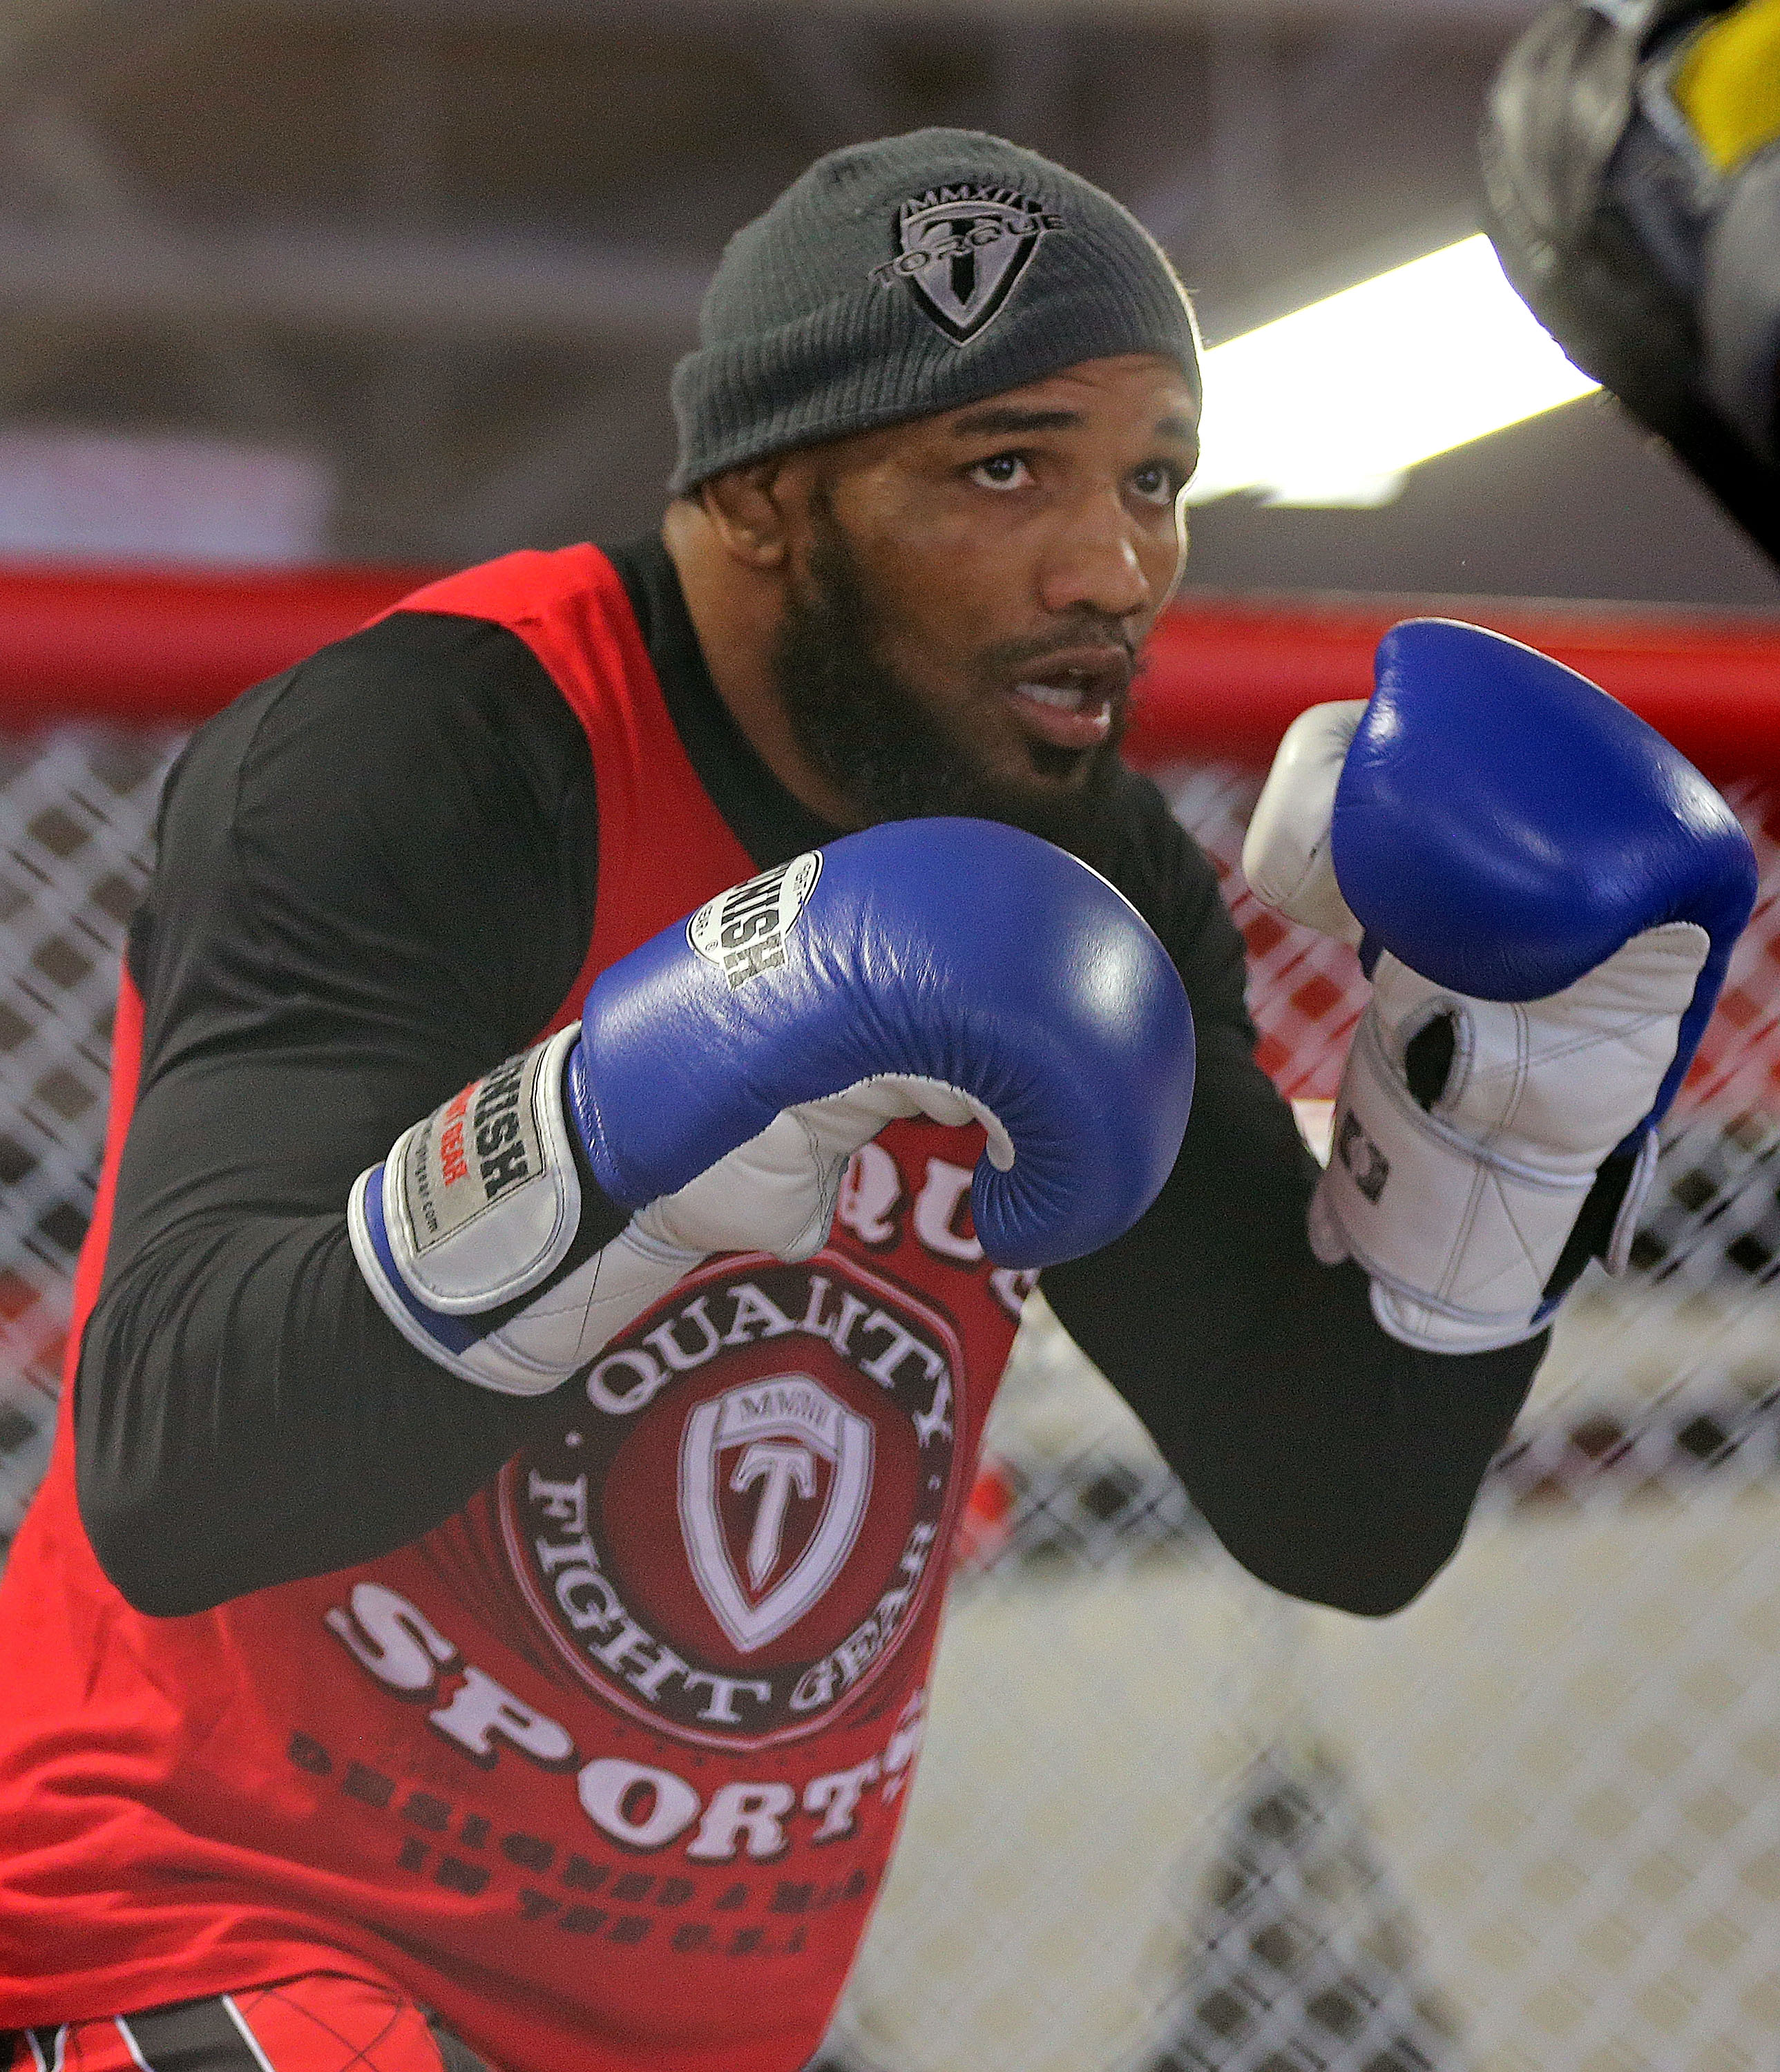 Yoel Romero works out for the public and members of the media at the UFC Gym the ahead of his fight against Lyoto Machida  on June 25, 2015 in Hollywood, Florida.  (Photo by Mike Ehrmann/Zuffa LLC via Getty Images)